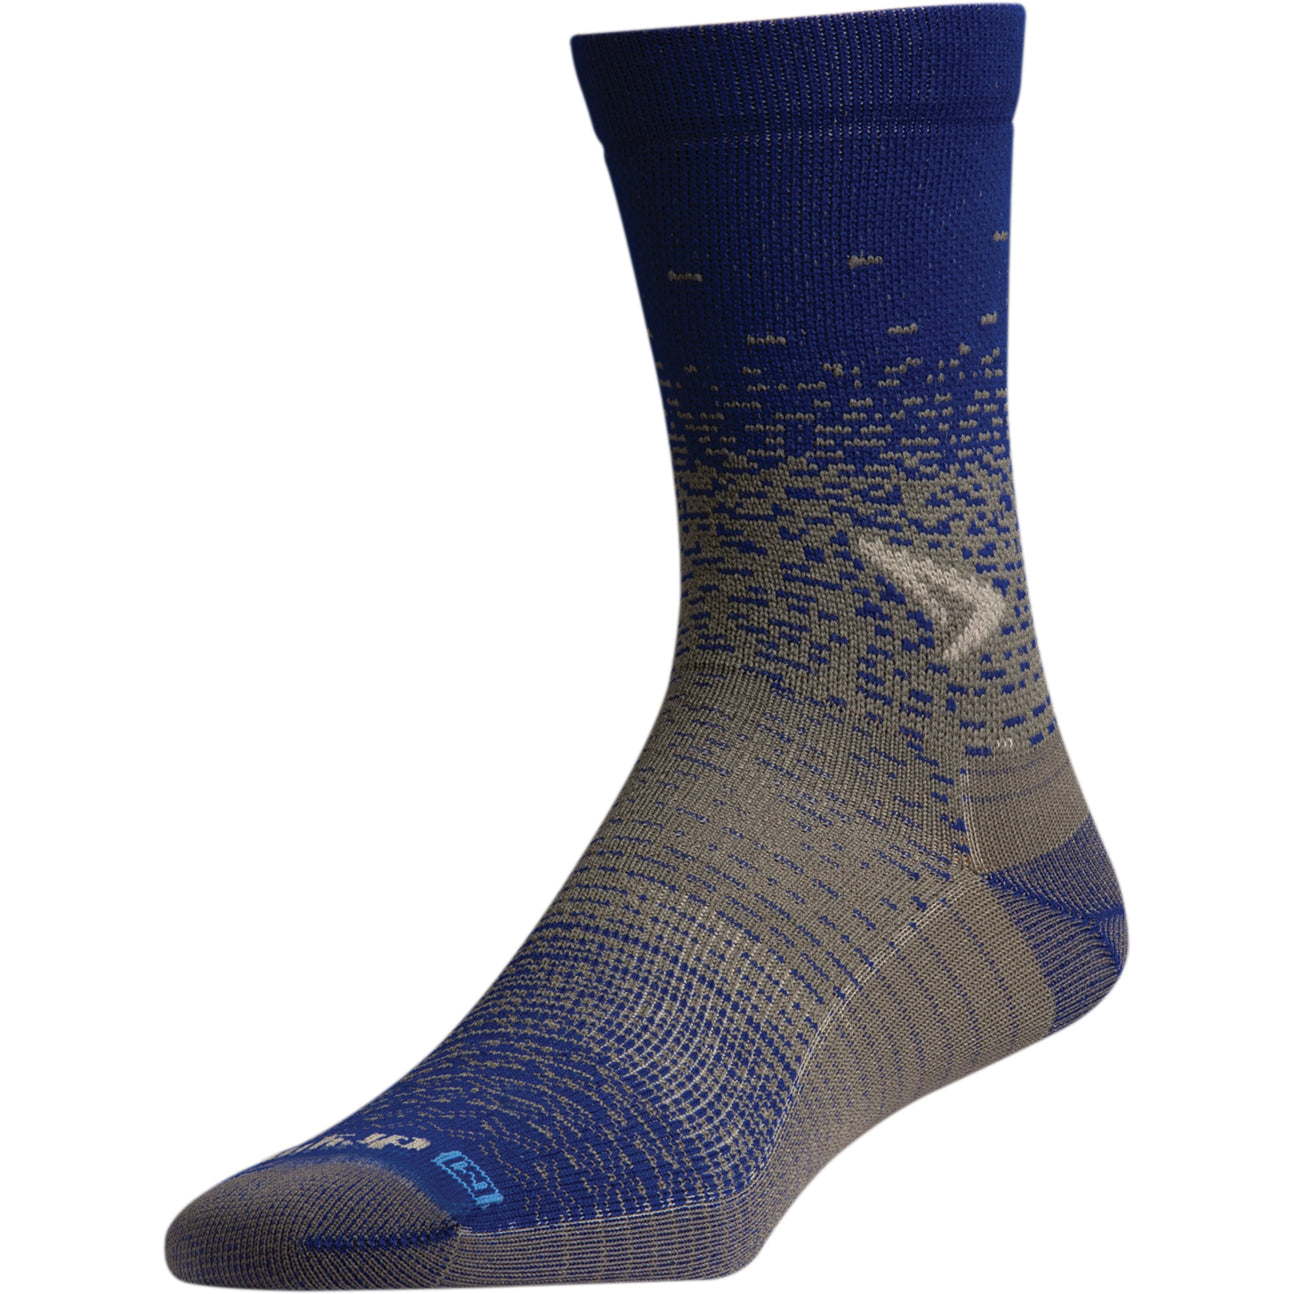 DRYMAX Thin Unisex Crew Royal/Anthracite Running Socks (DMX-RUN-1378-P)